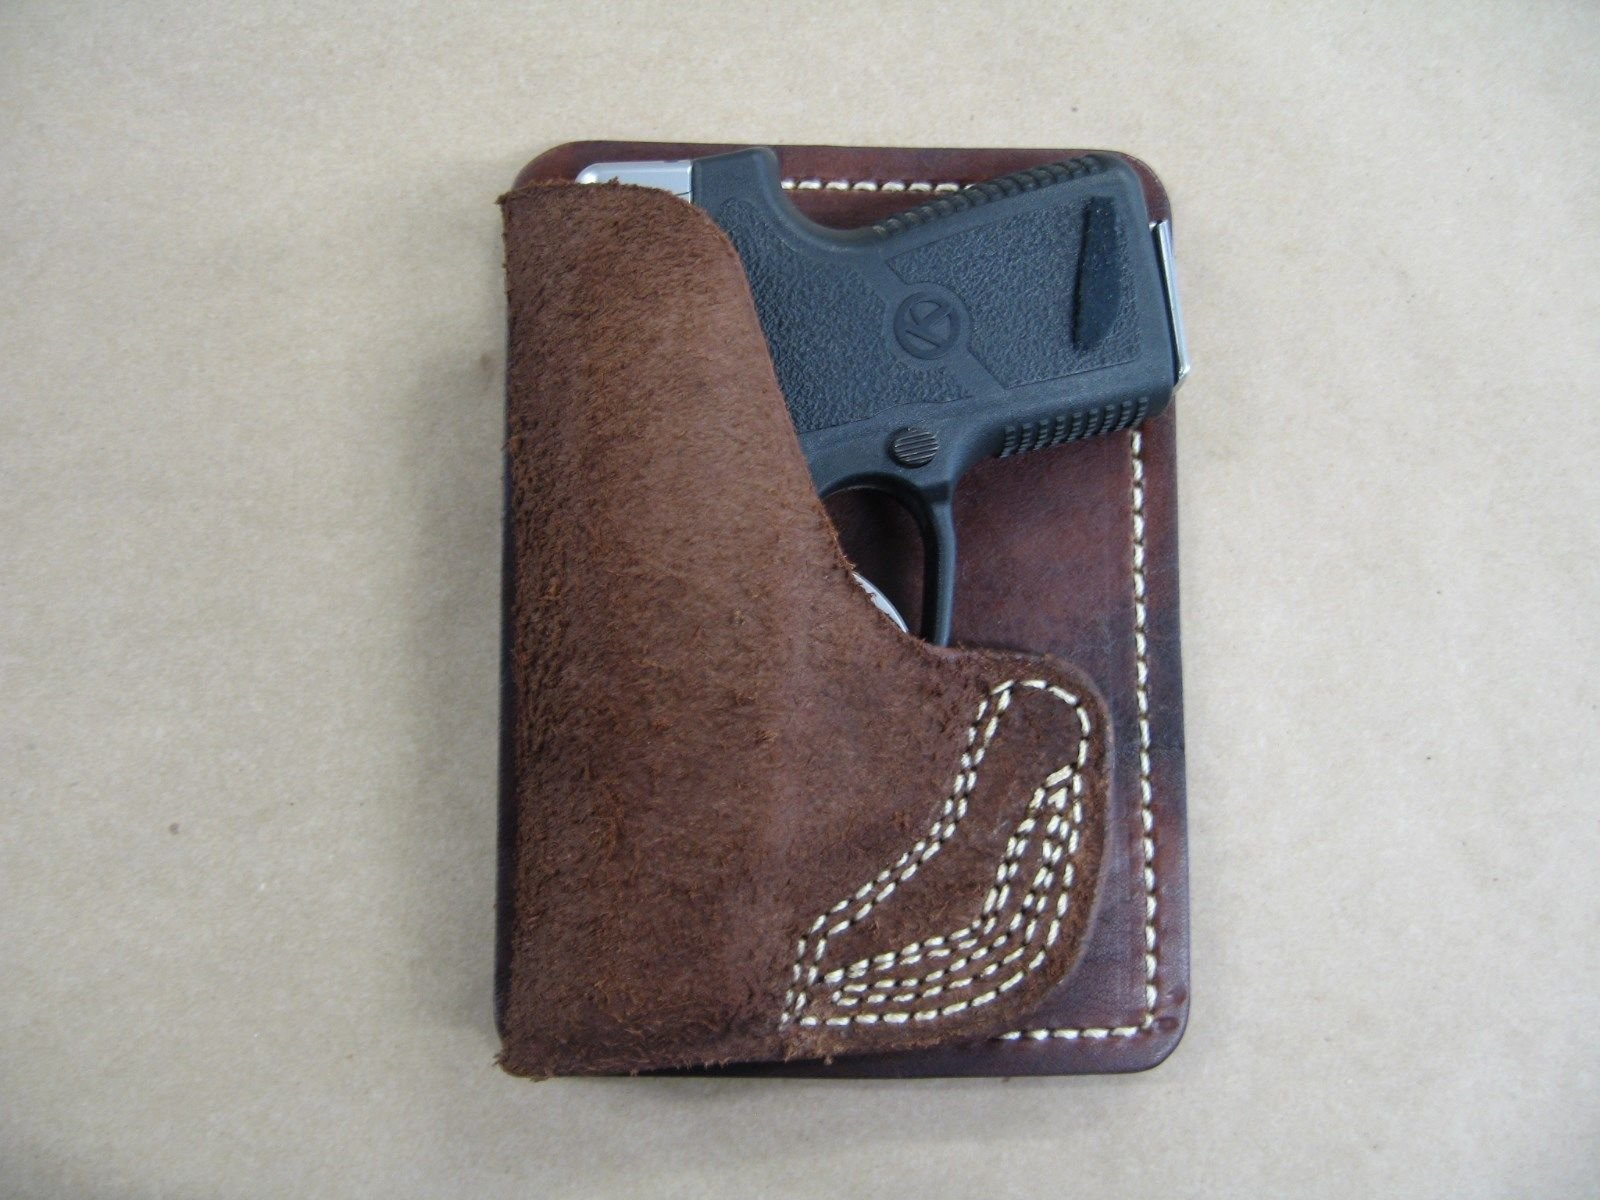 Kimber Micro 9 Pocket Holster Top Deals & Lowest Price | SuperOffers com